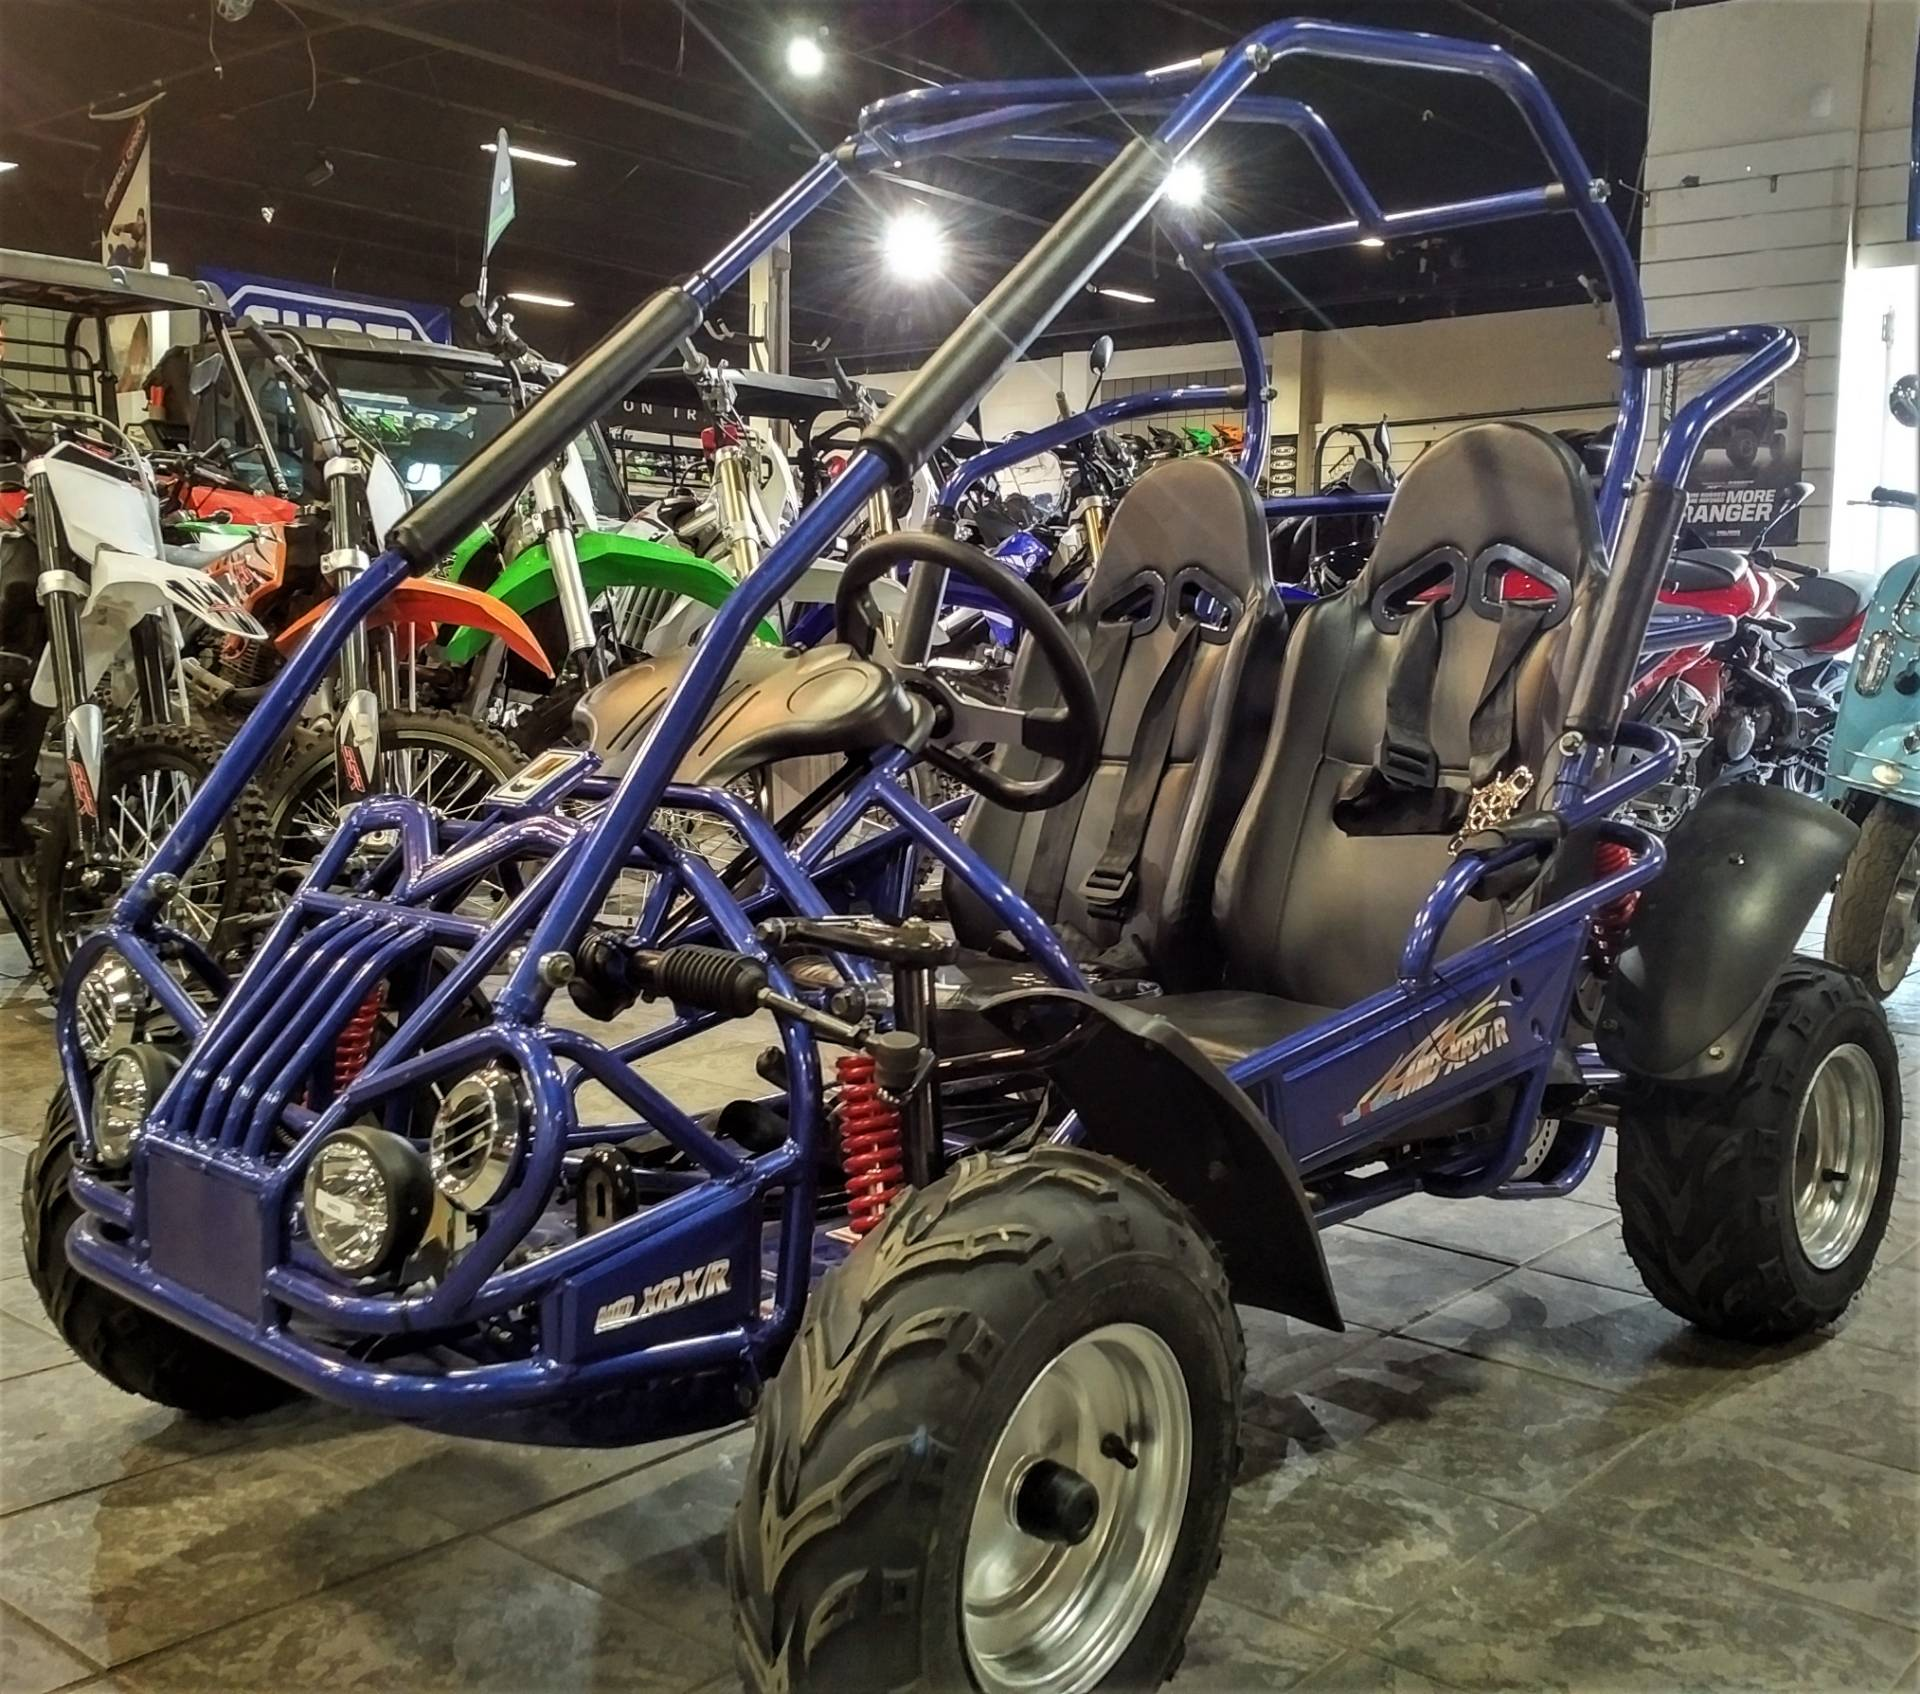 2018 TRAILMASTER MID XRX/R in Salinas, California - Photo 6